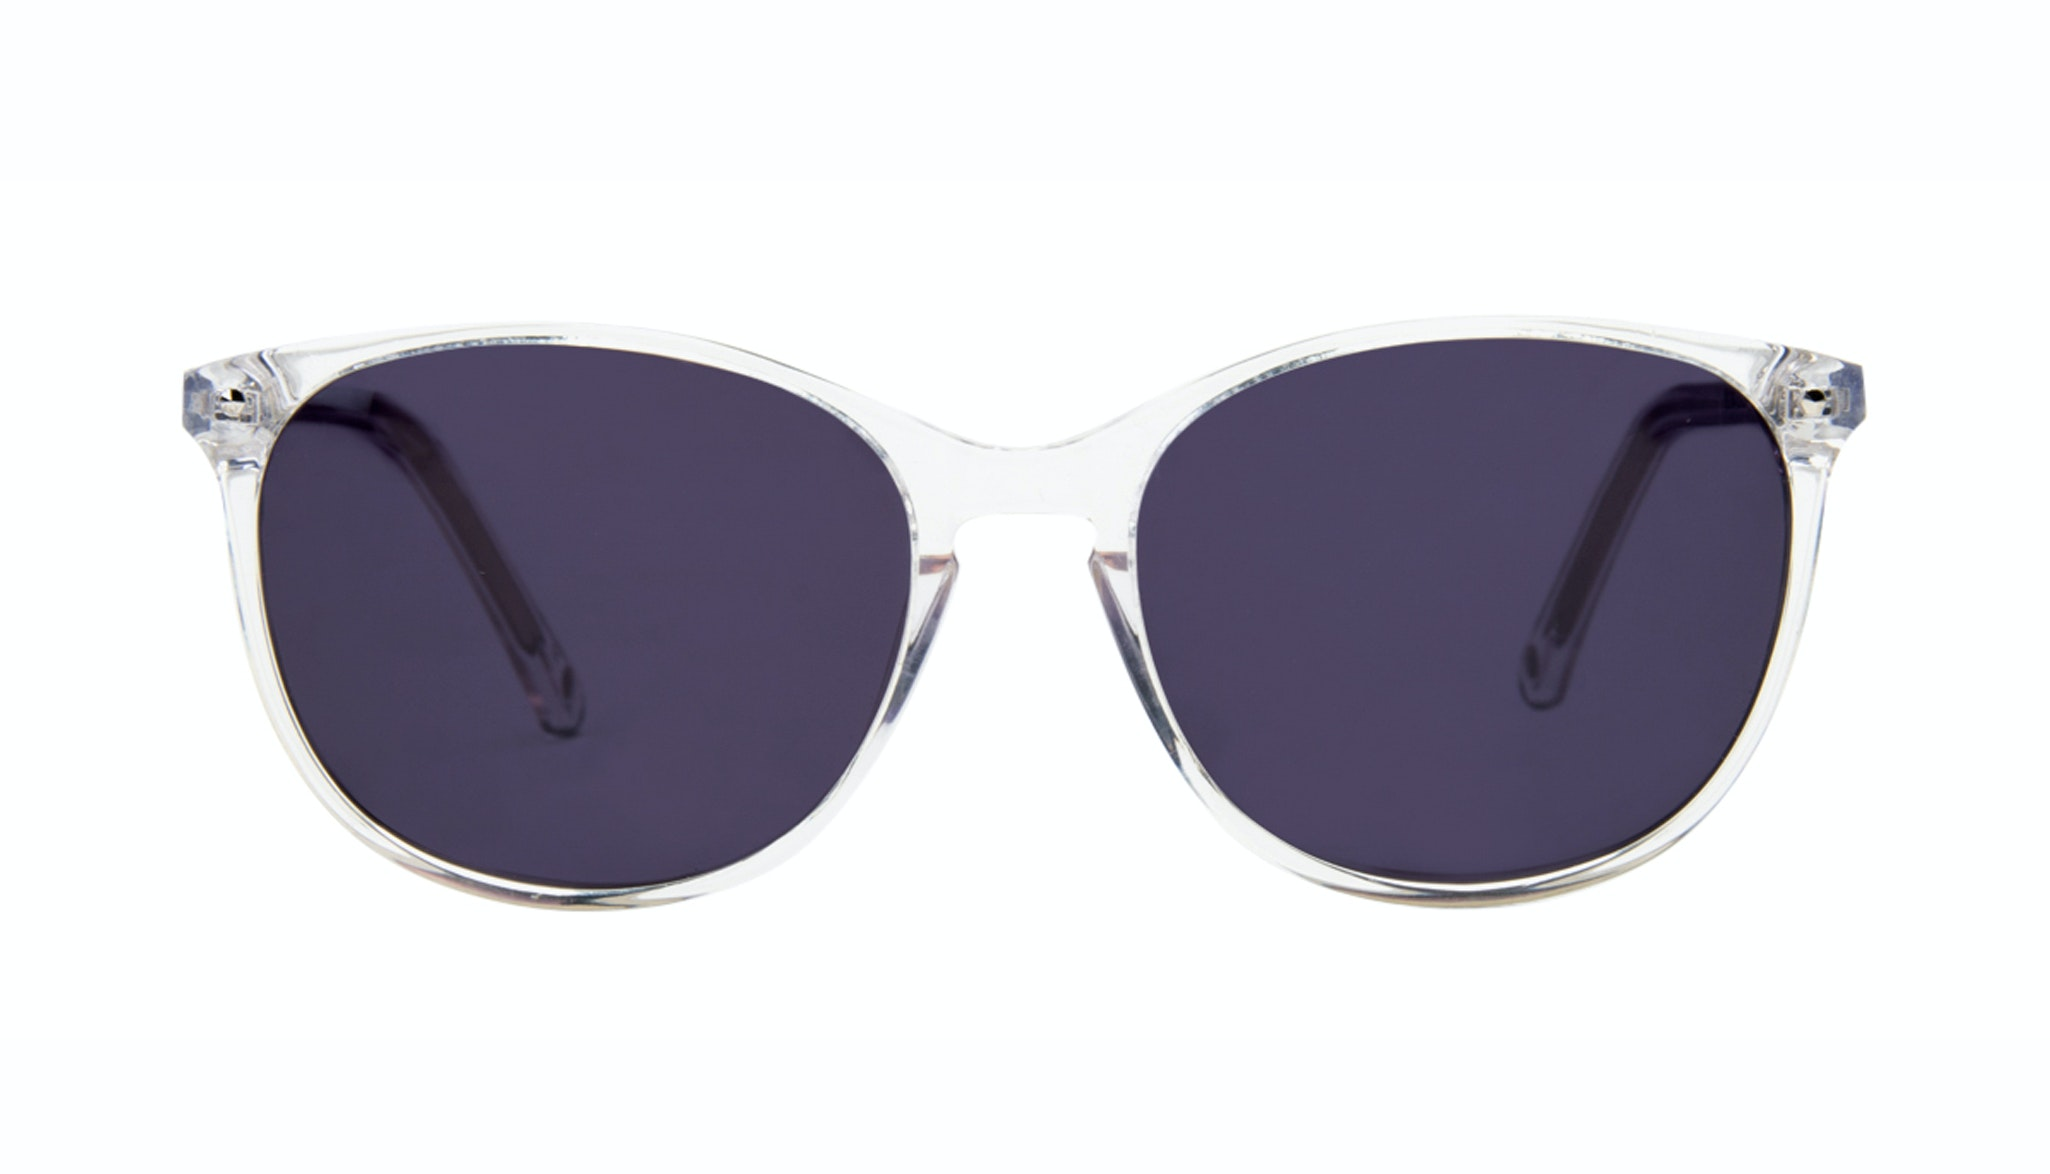 Affordable Fashion Glasses Rectangle Square Round Sunglasses Women Nadine Water Front